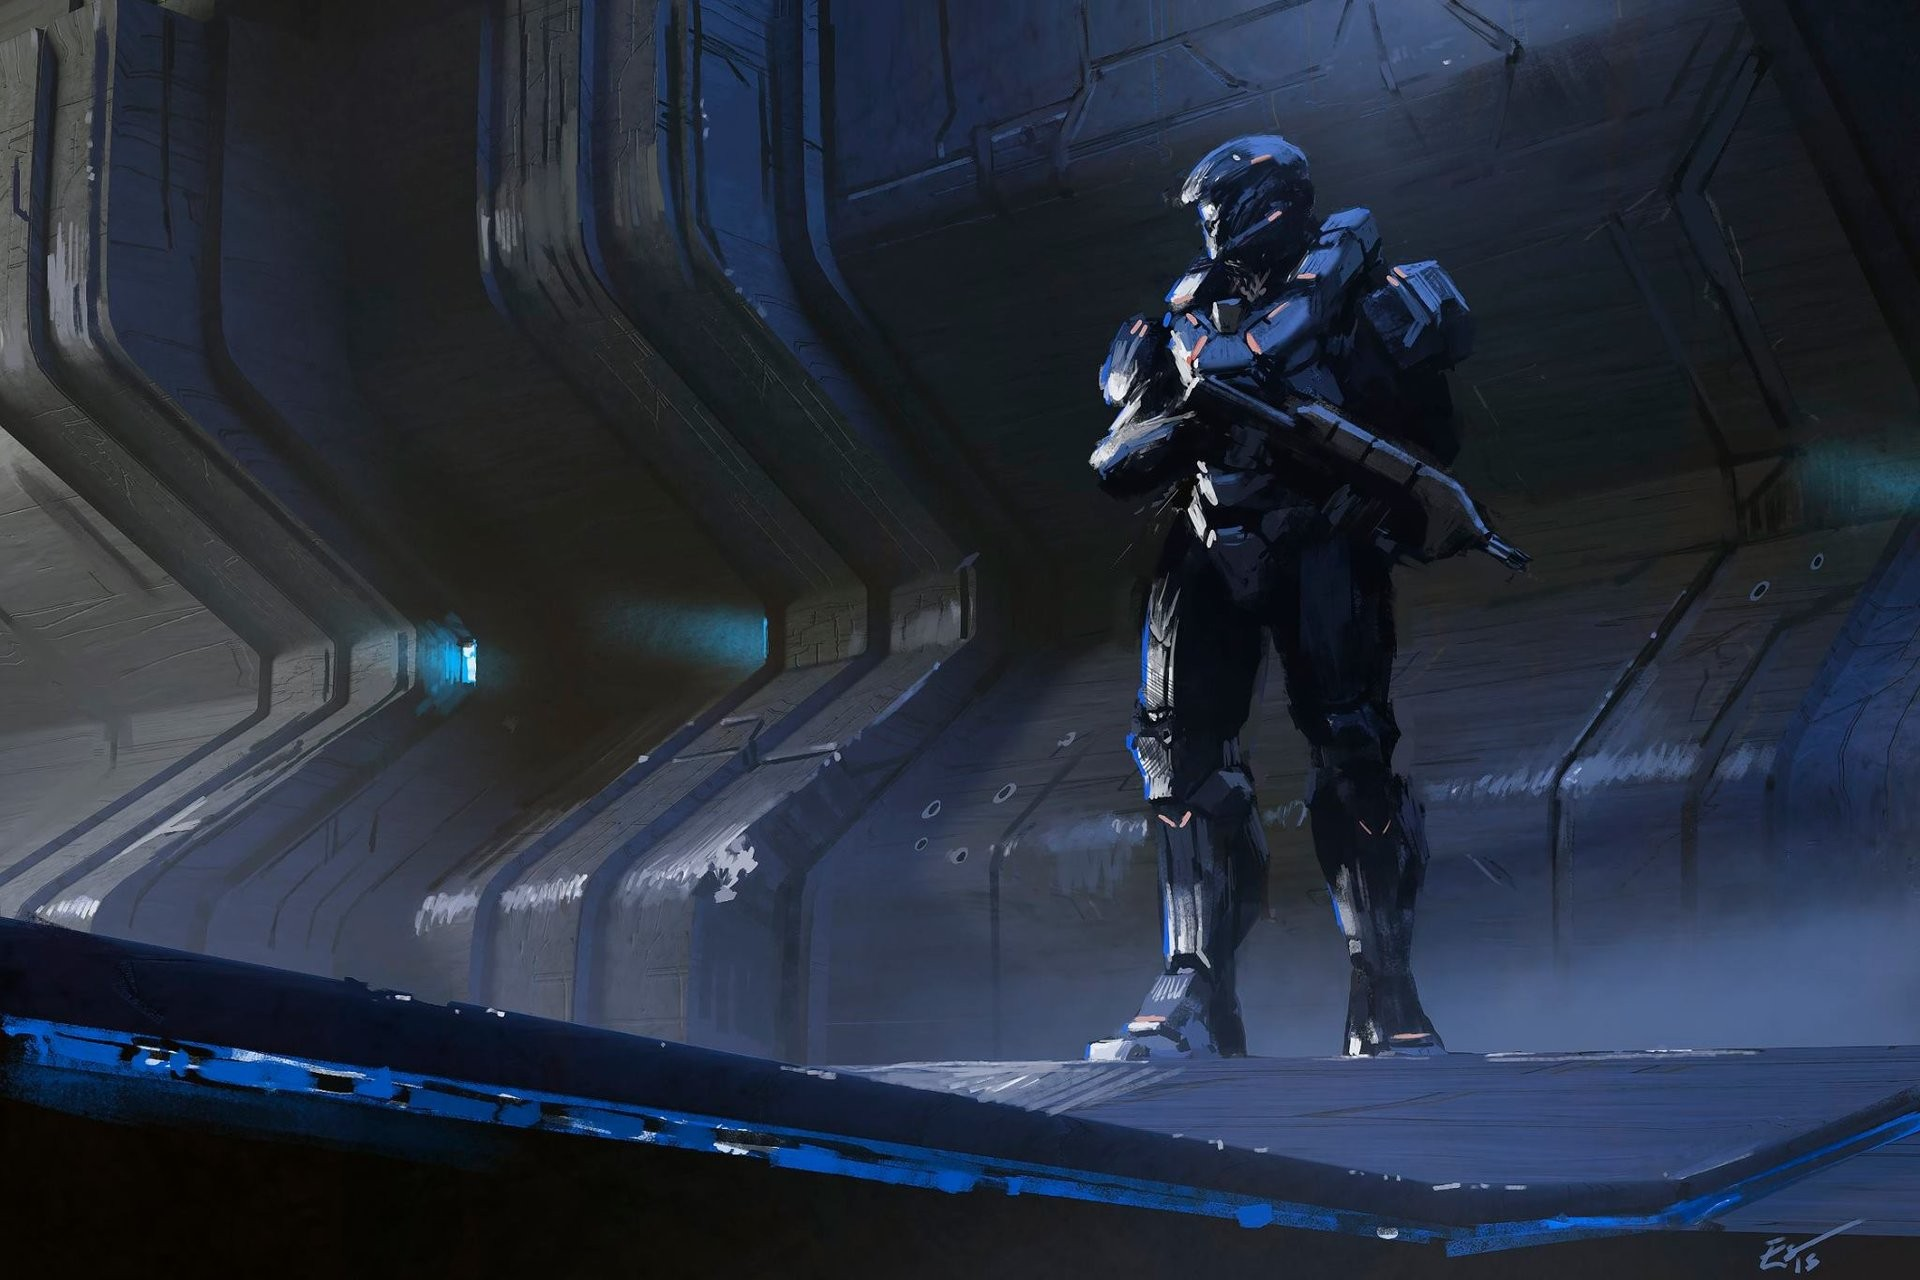 General 1920x1280 fantasy art Espen Saetervik artwork soldier futuristic science fiction gun Halo Spartans (Halo)